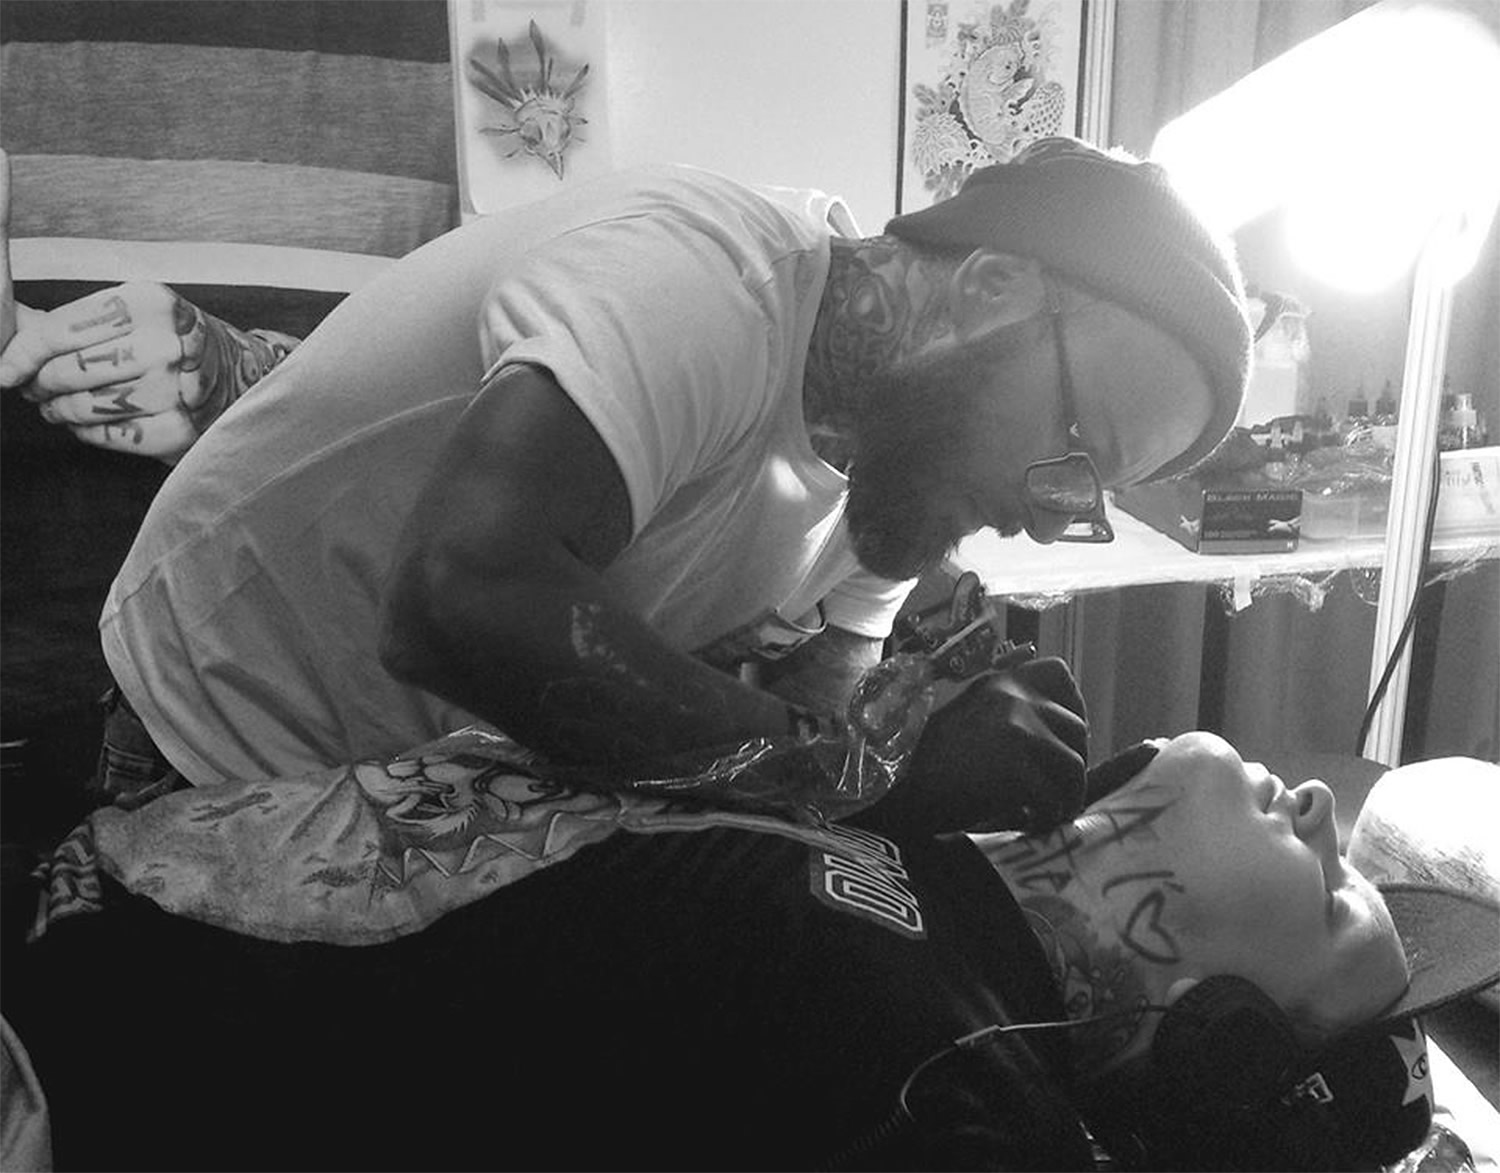 the artist Lukasz Bam Kaczmarek working on a tattoo